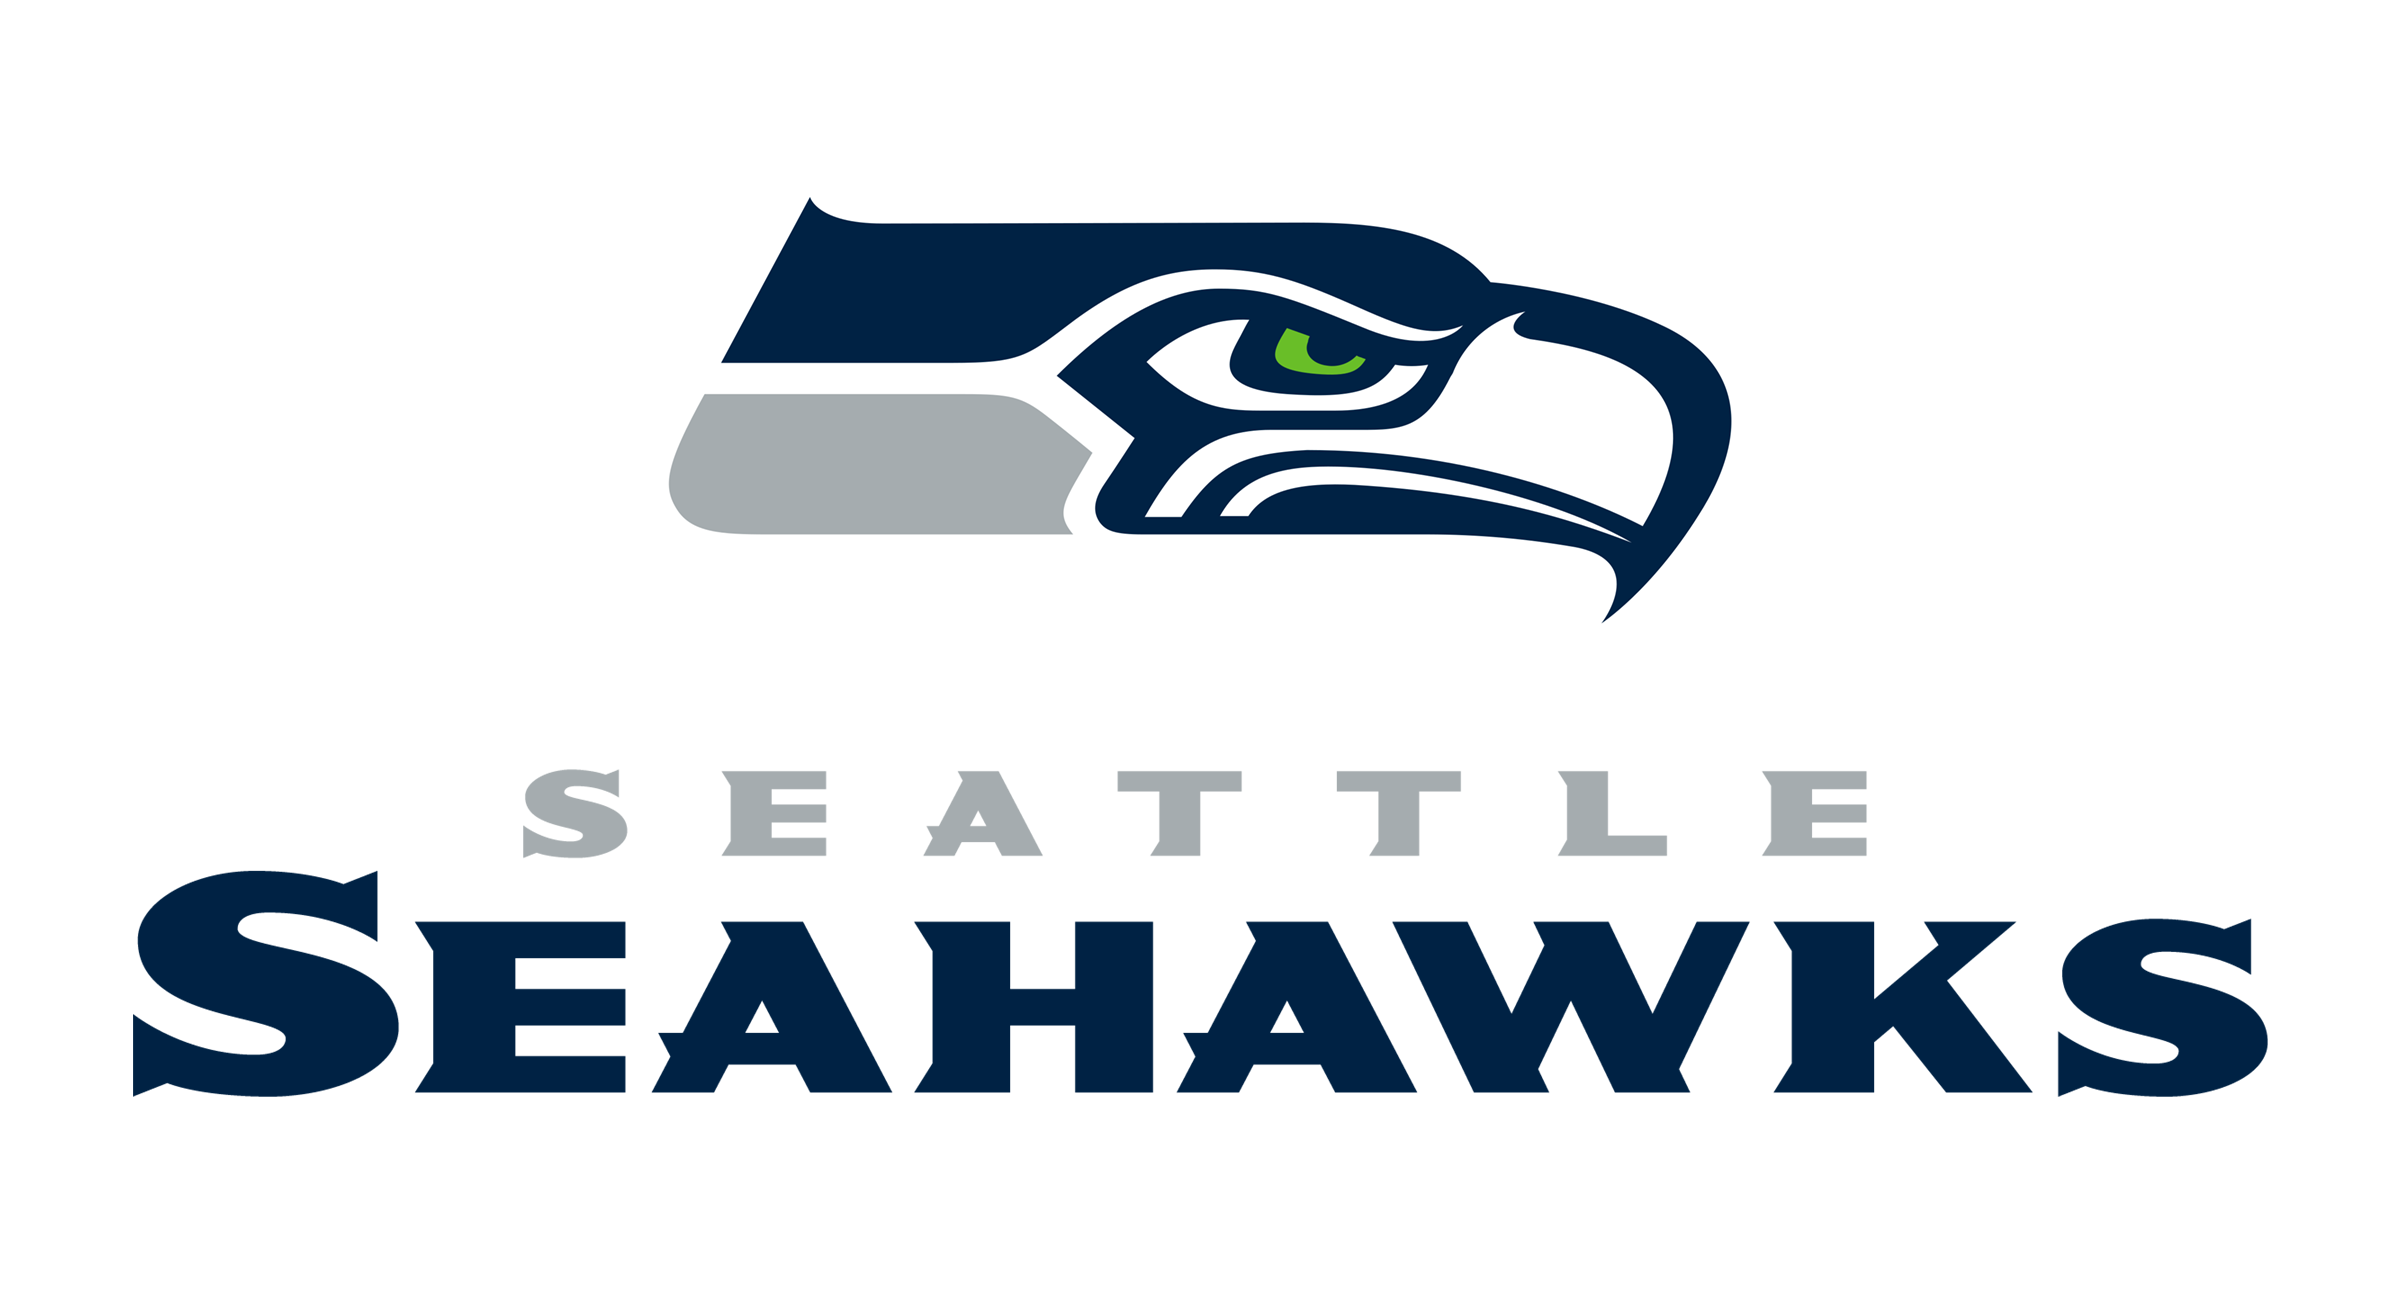 seattle-seahawks-football-logo.png